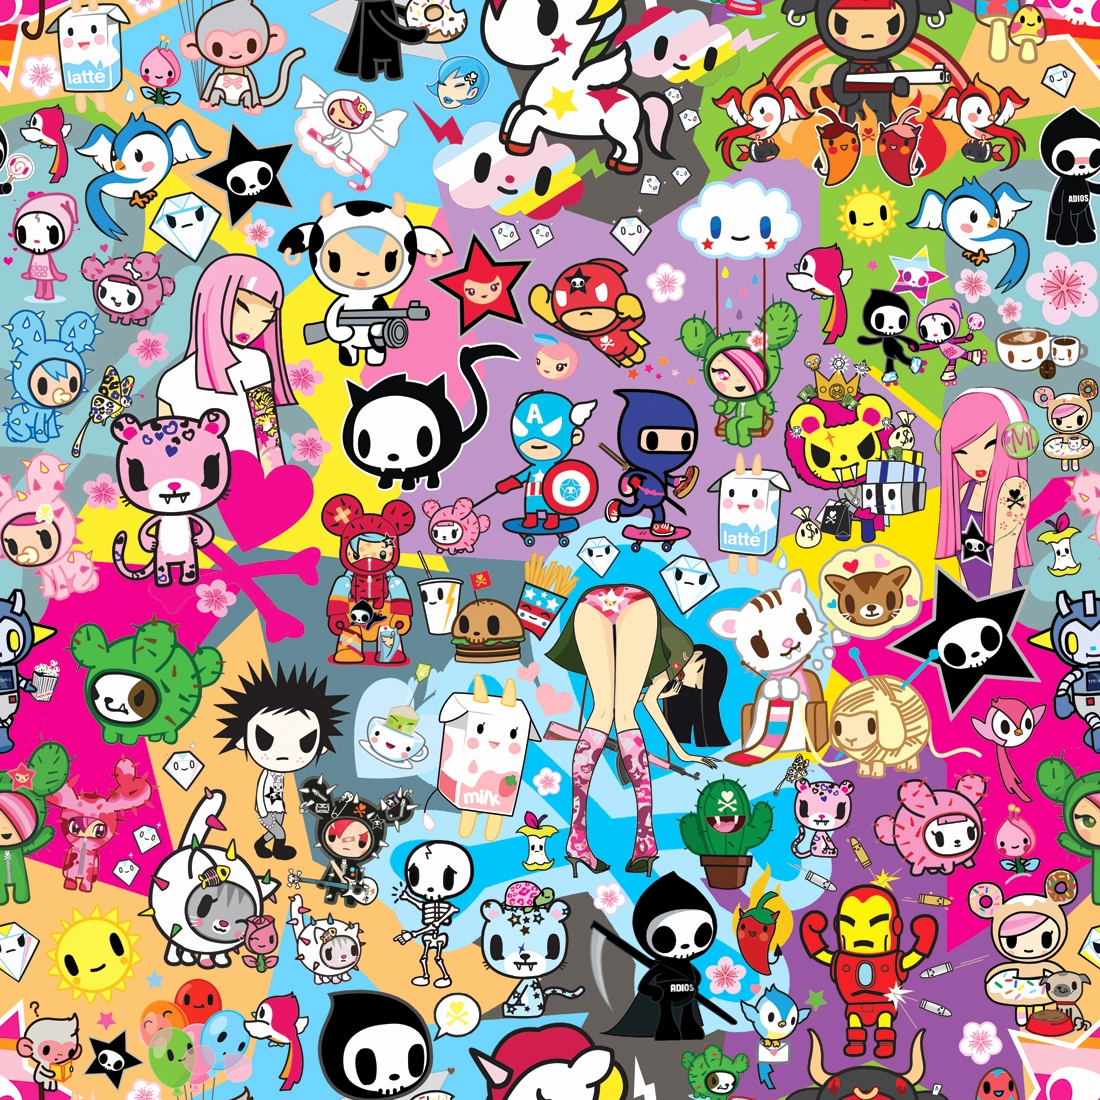 tokidoki wallpapers fresh november 2011 fair rabbit art this month of tokidoki wallpapers